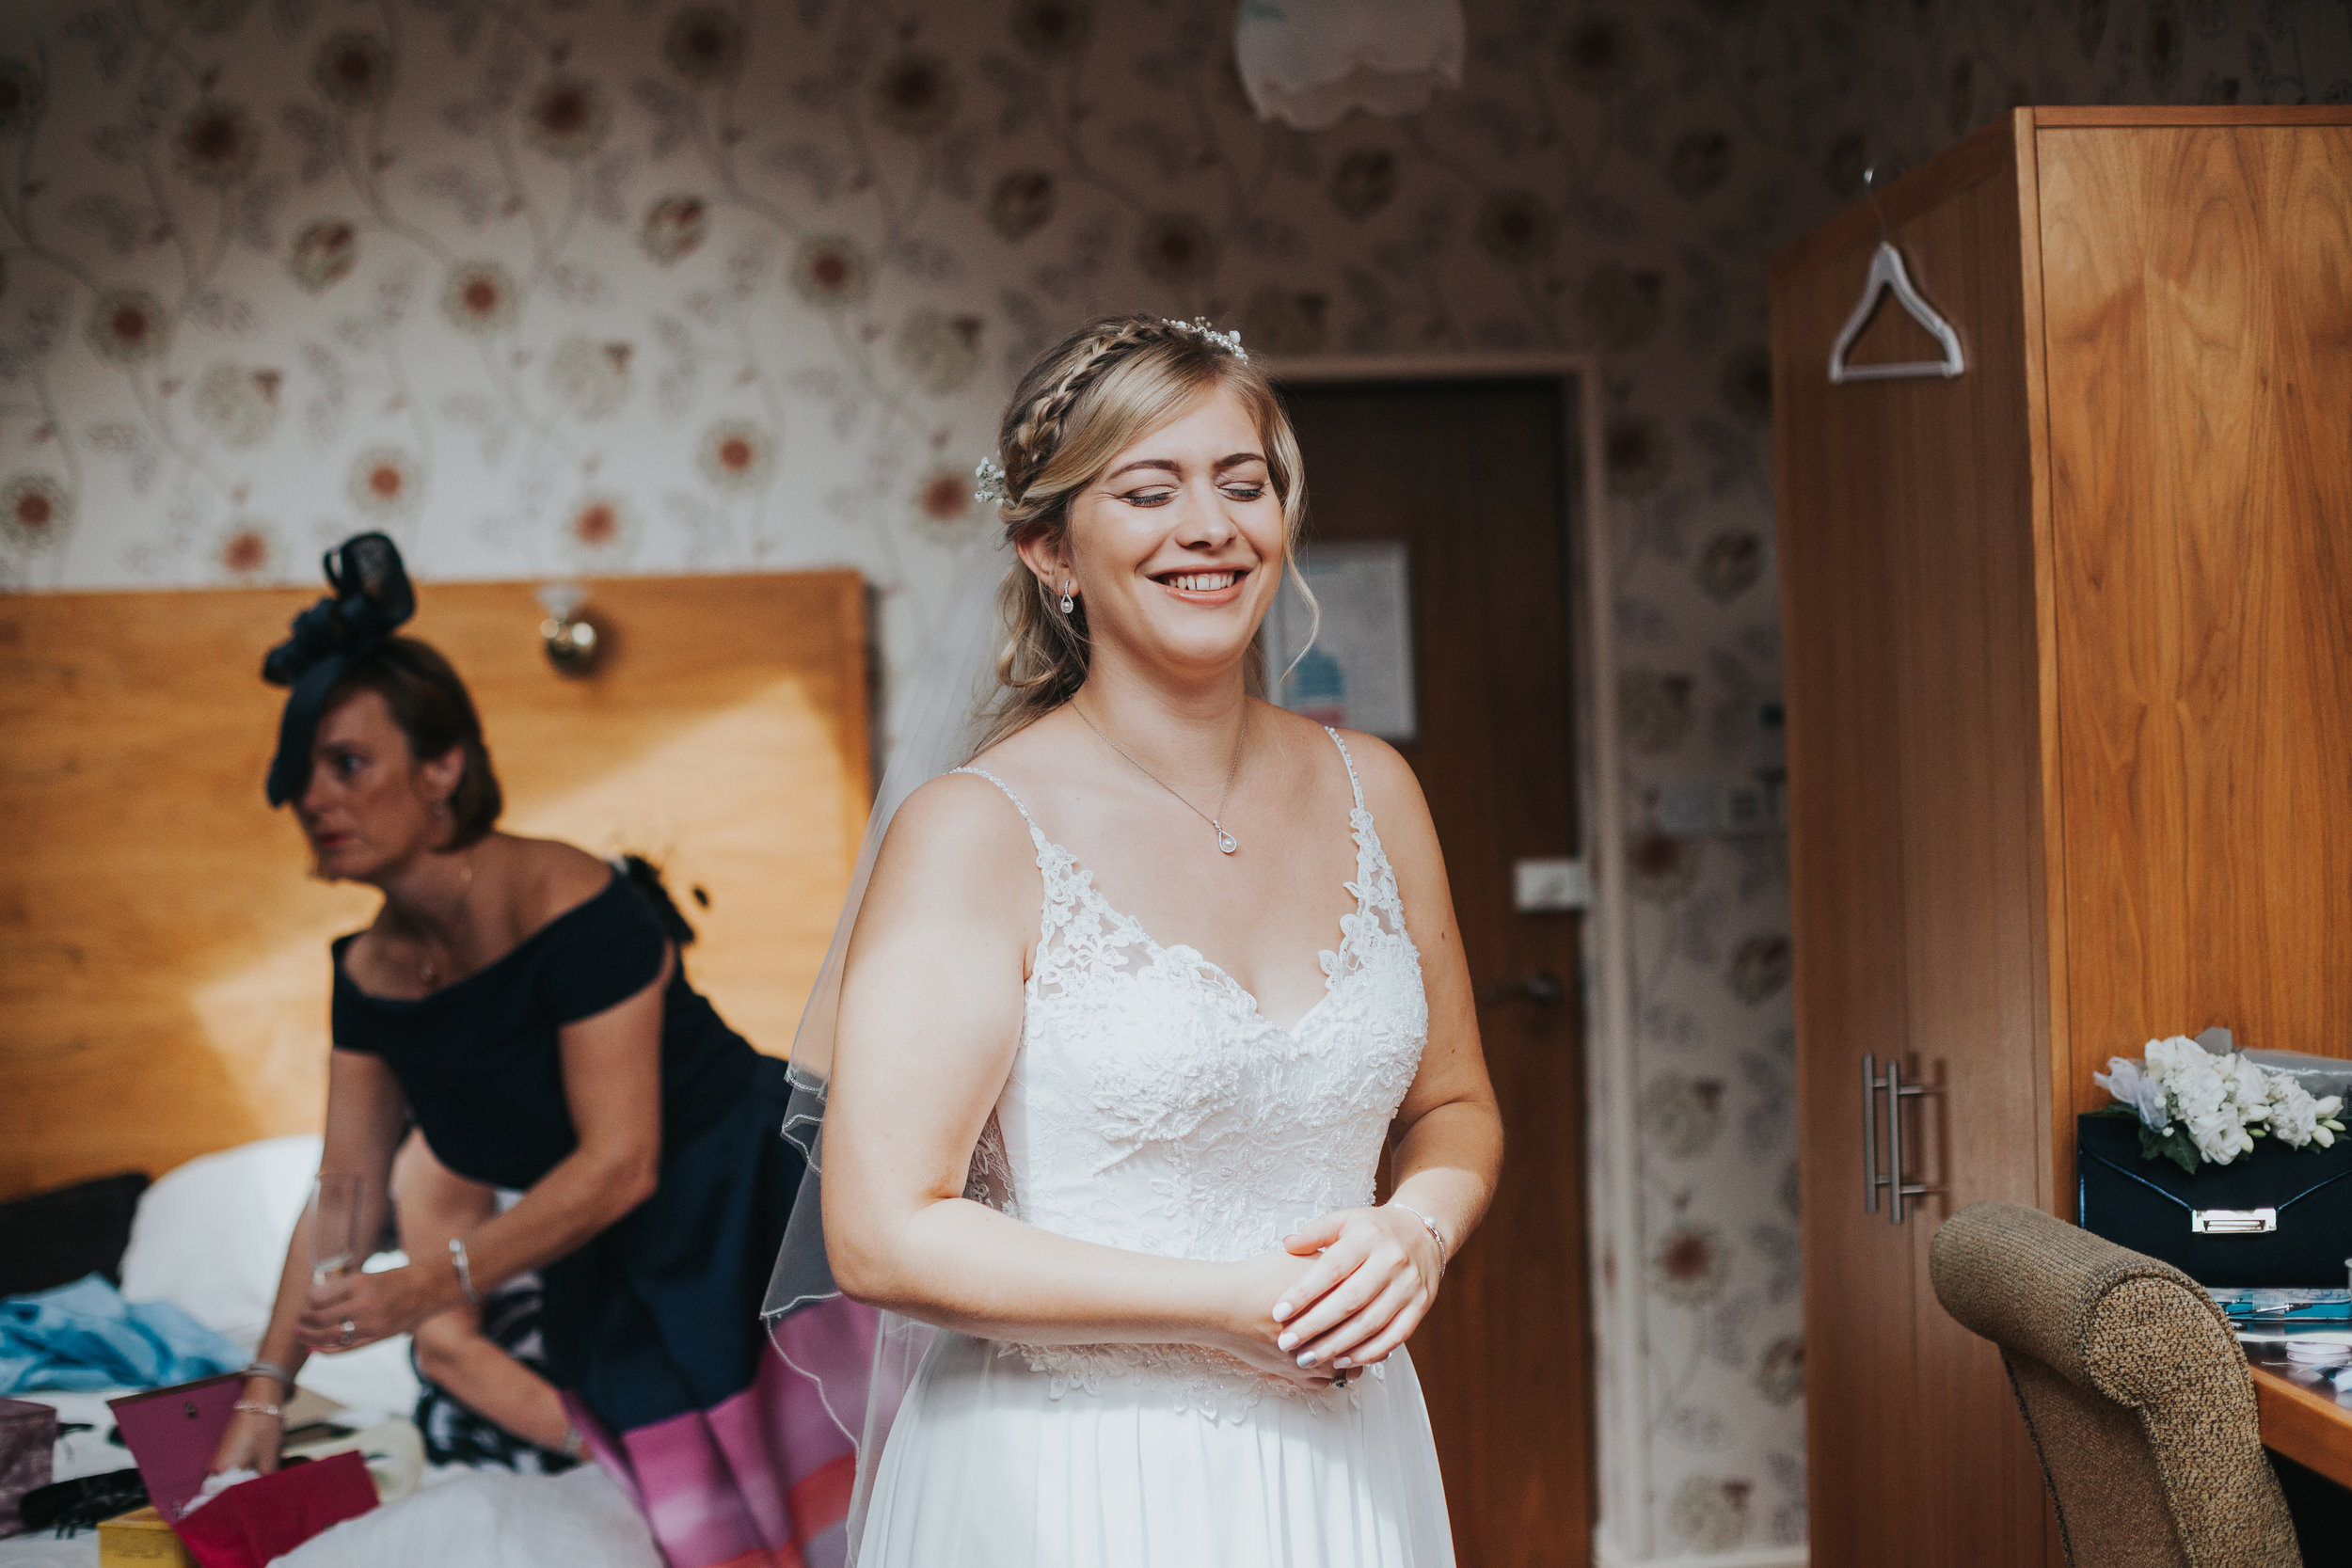 Bride smiling ready to get married at Mytton Fold.